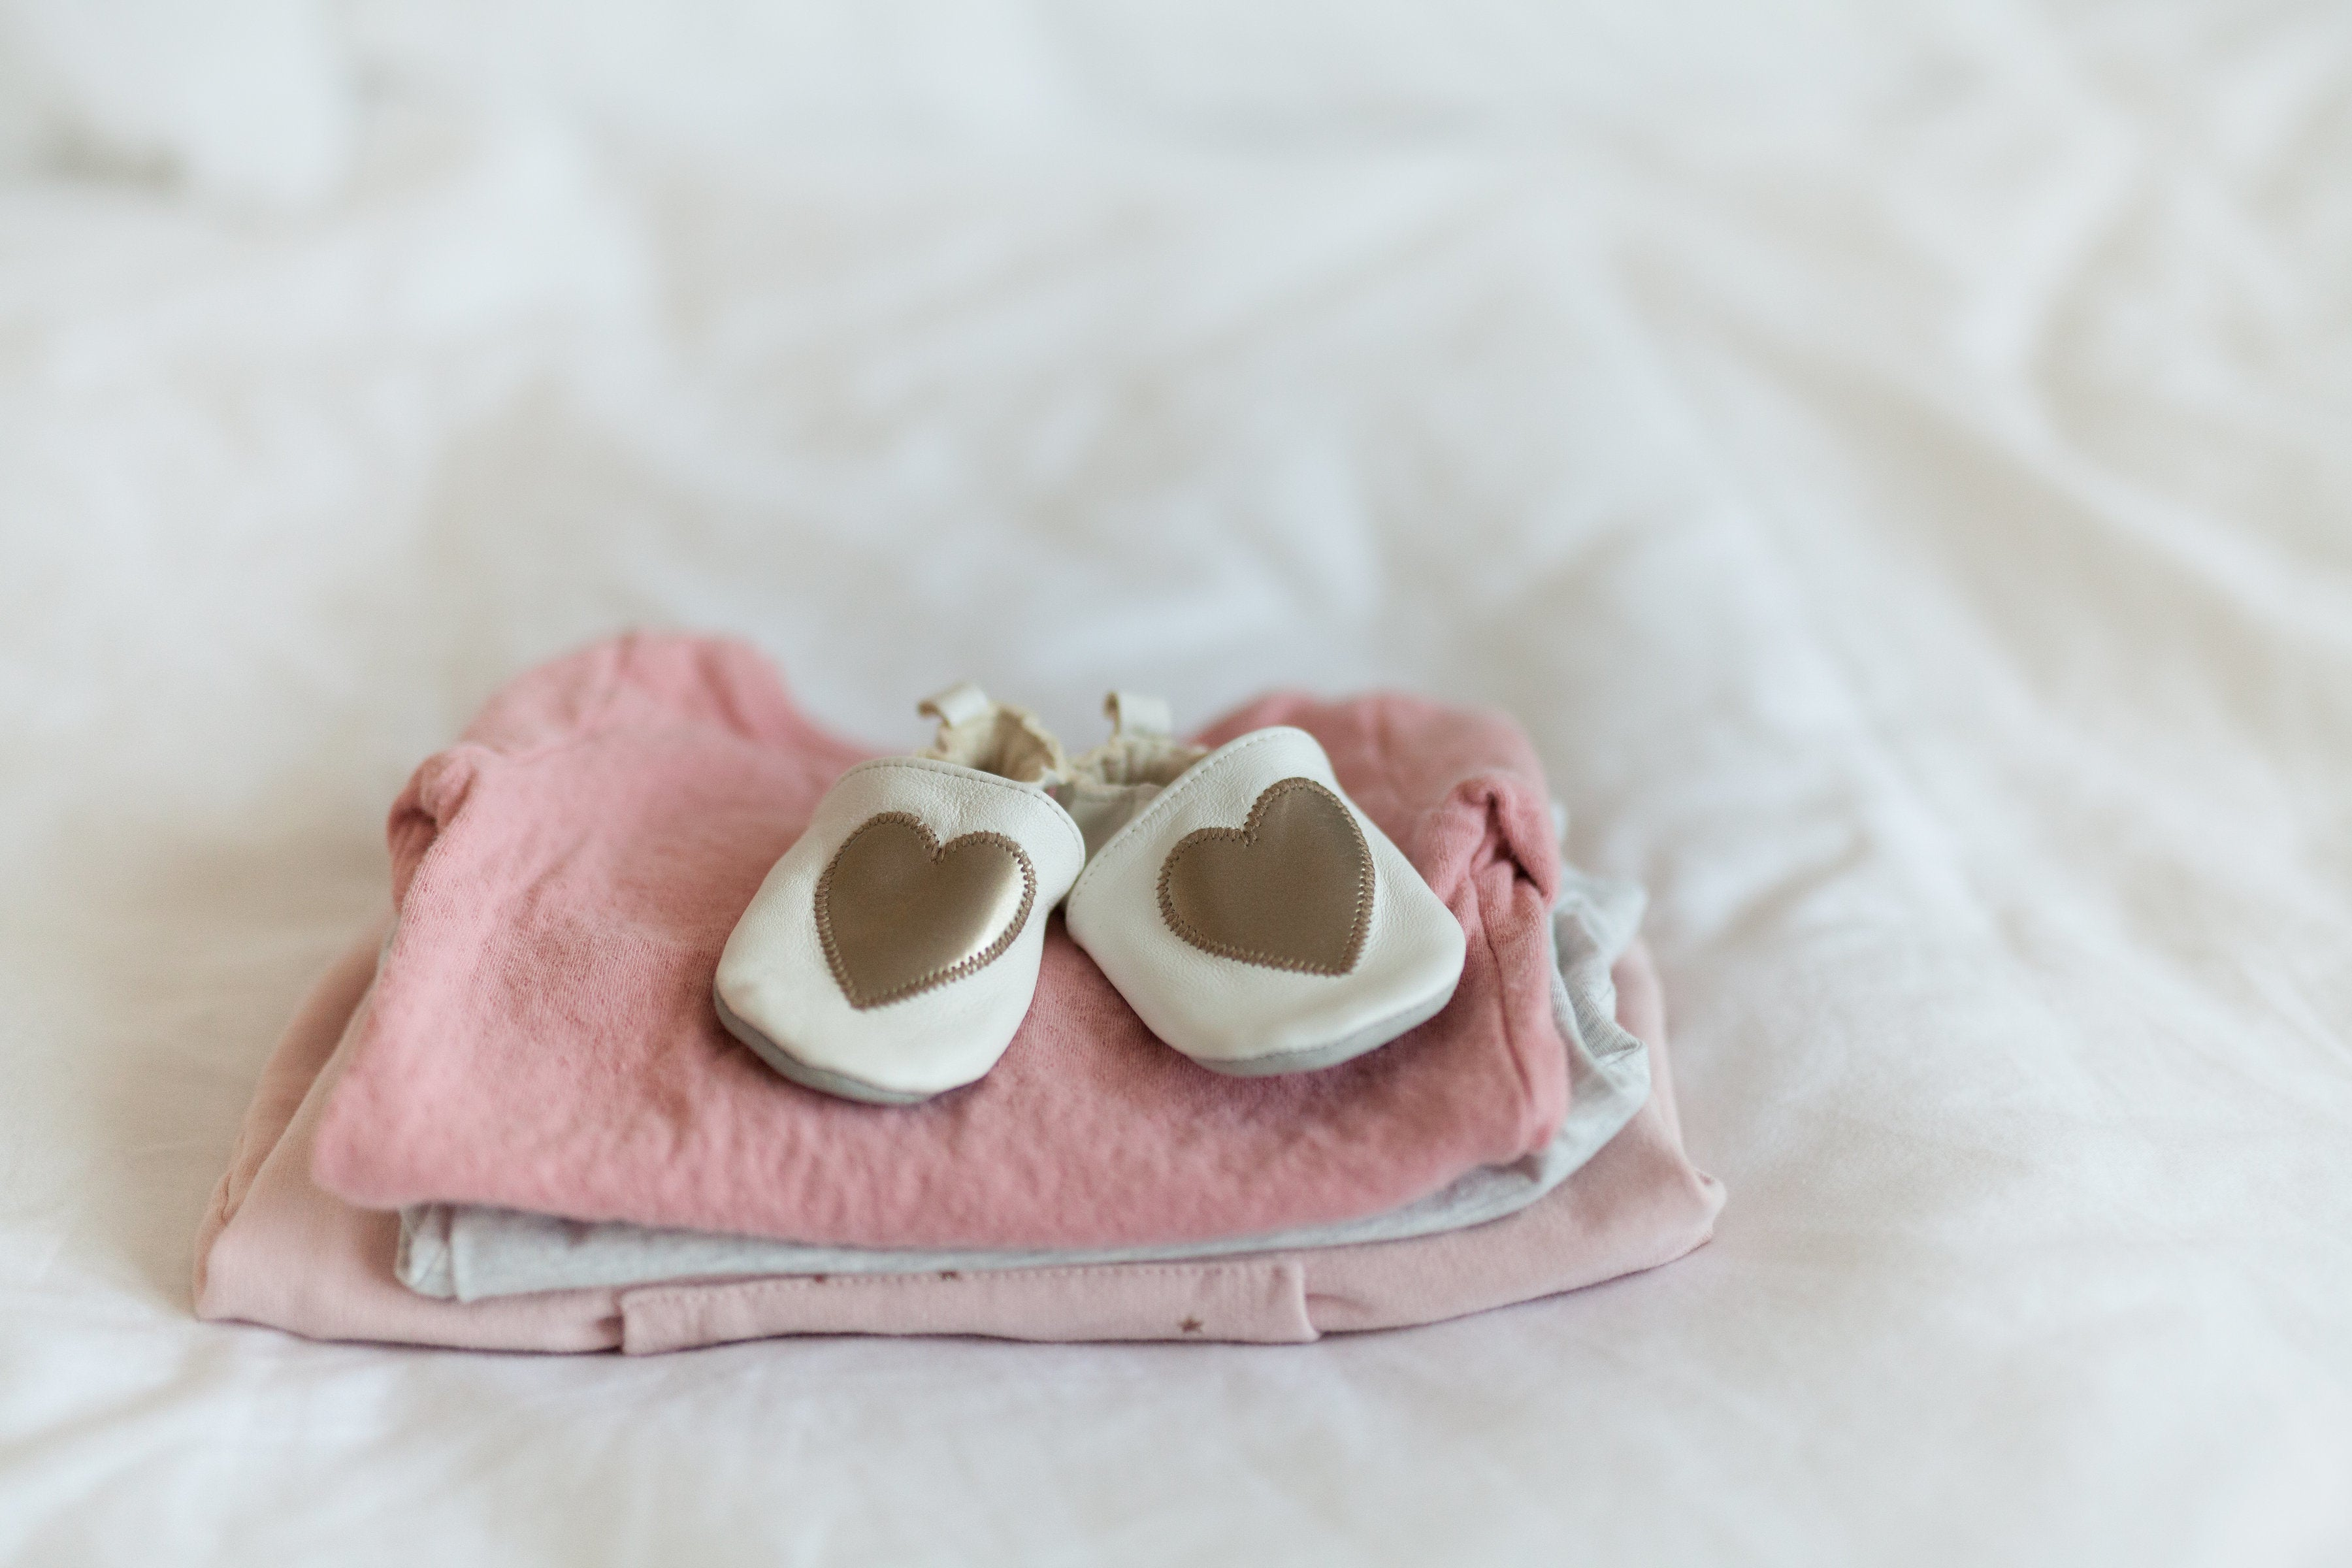 folded baby clothes on top of a bed